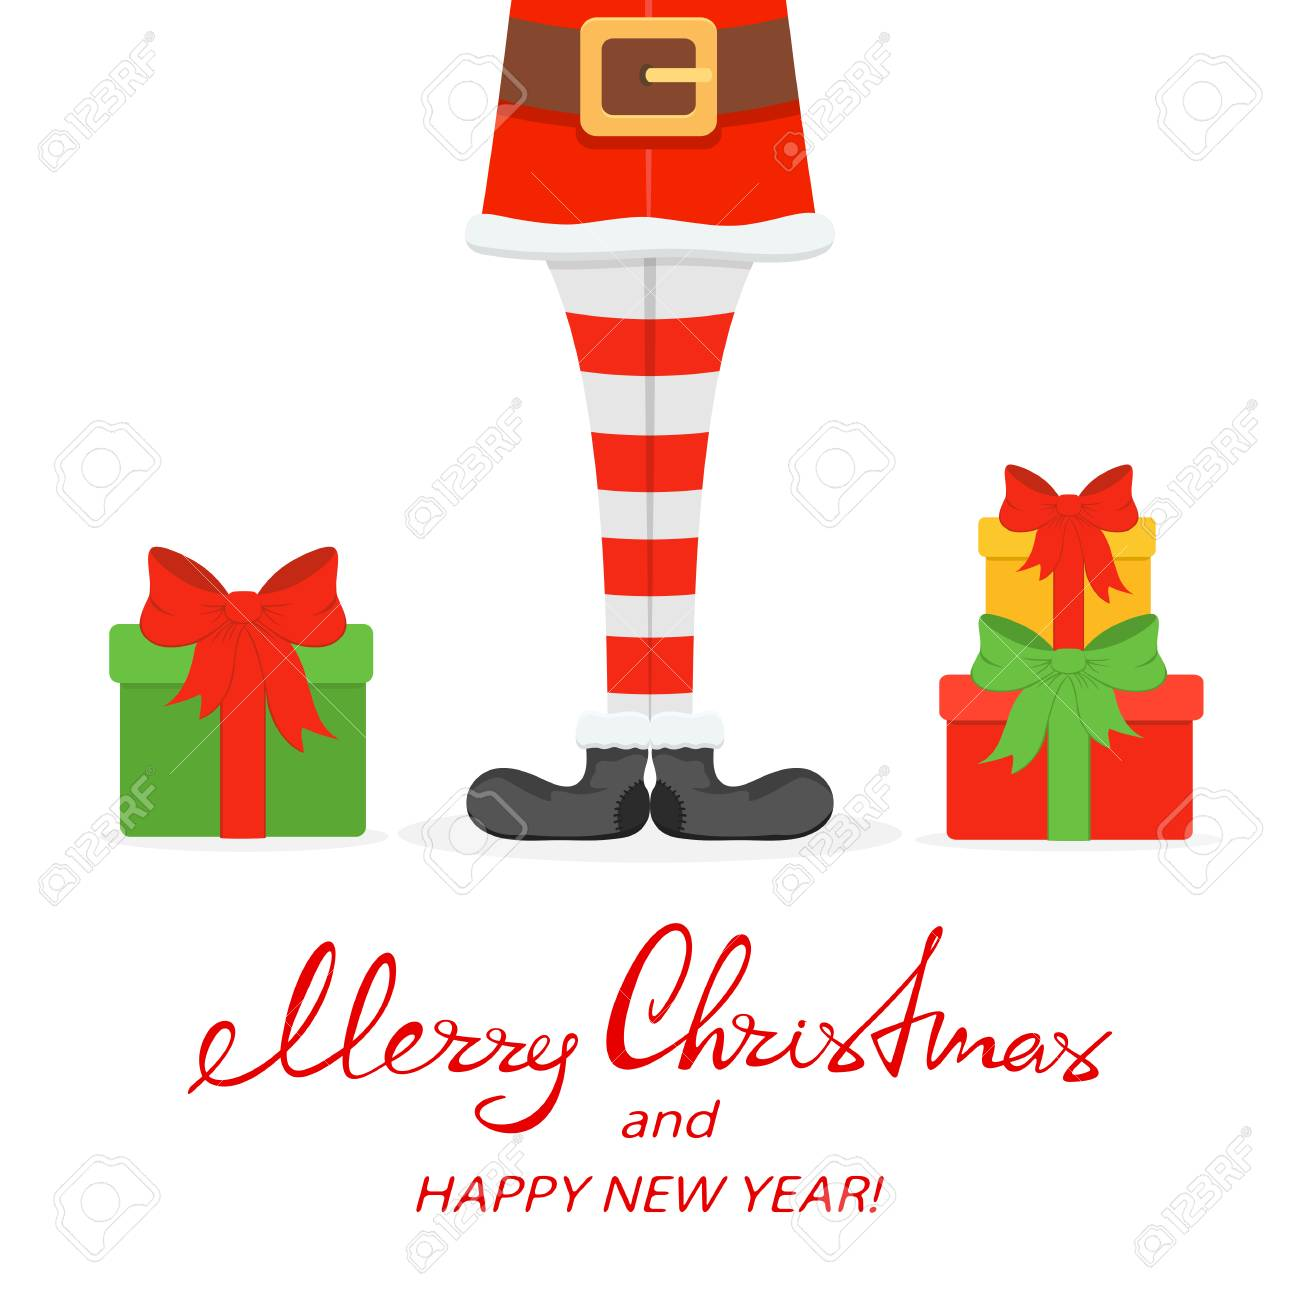 8fecf703df98 Lettering Merry Christmas and Happy New Year with Santa legs in striped  socks and black shoes